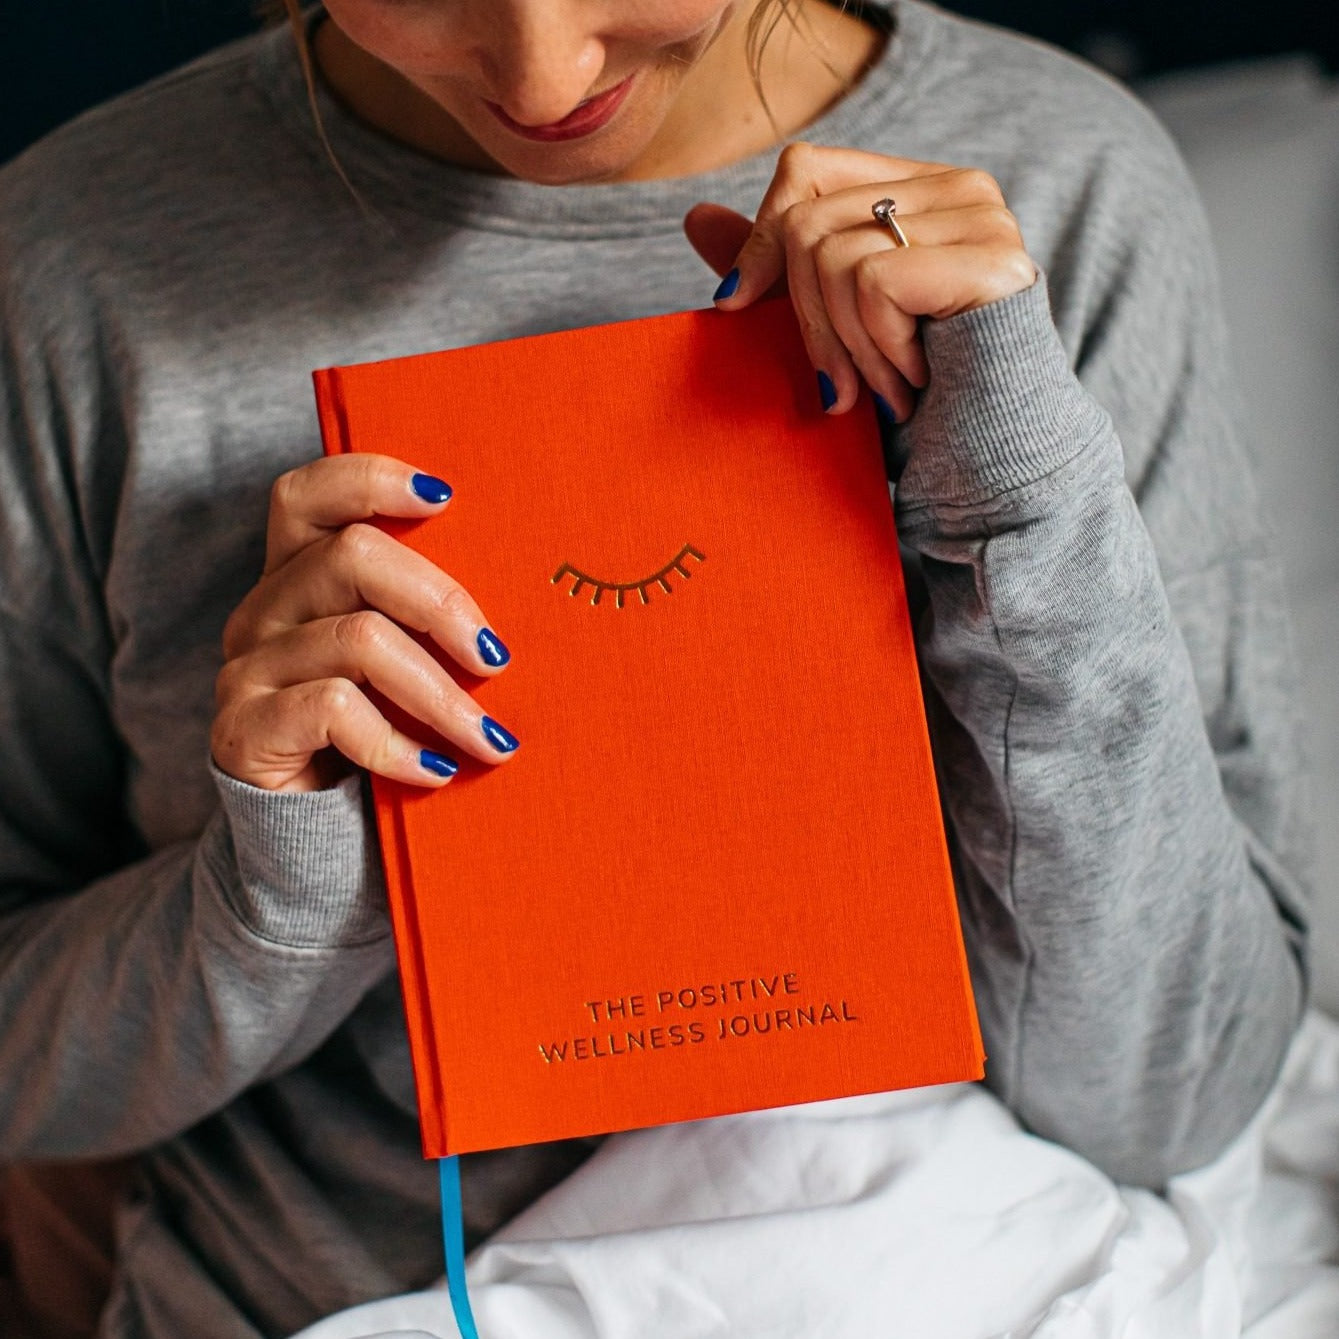 The Positive Wellness Journal - Shop at the Old Fire Station